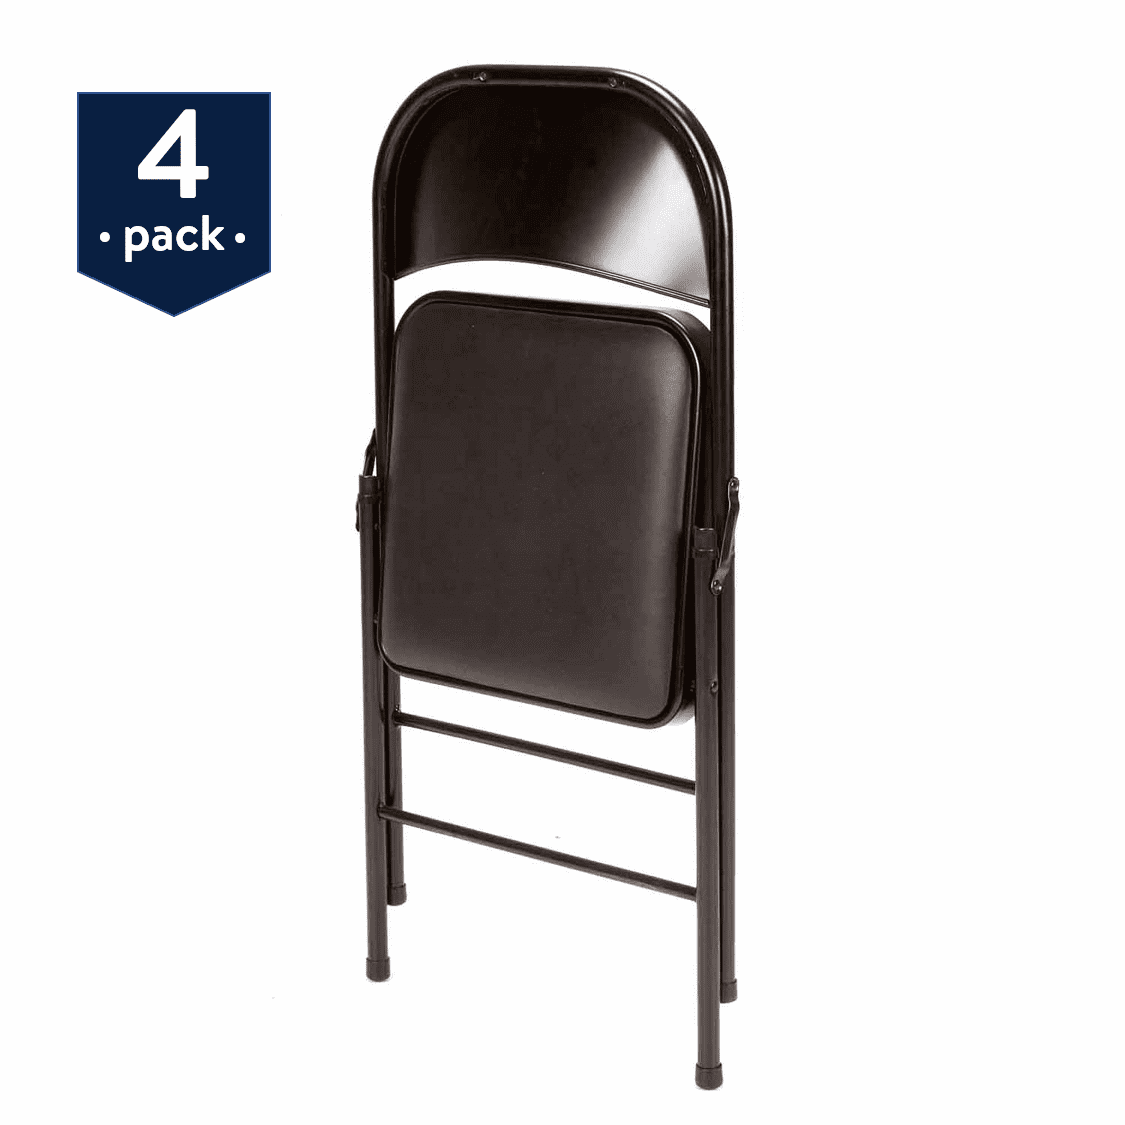 Superb Mainstays Vinyl 4 Pack Folding Chair In Black Walmart Com Andrewgaddart Wooden Chair Designs For Living Room Andrewgaddartcom